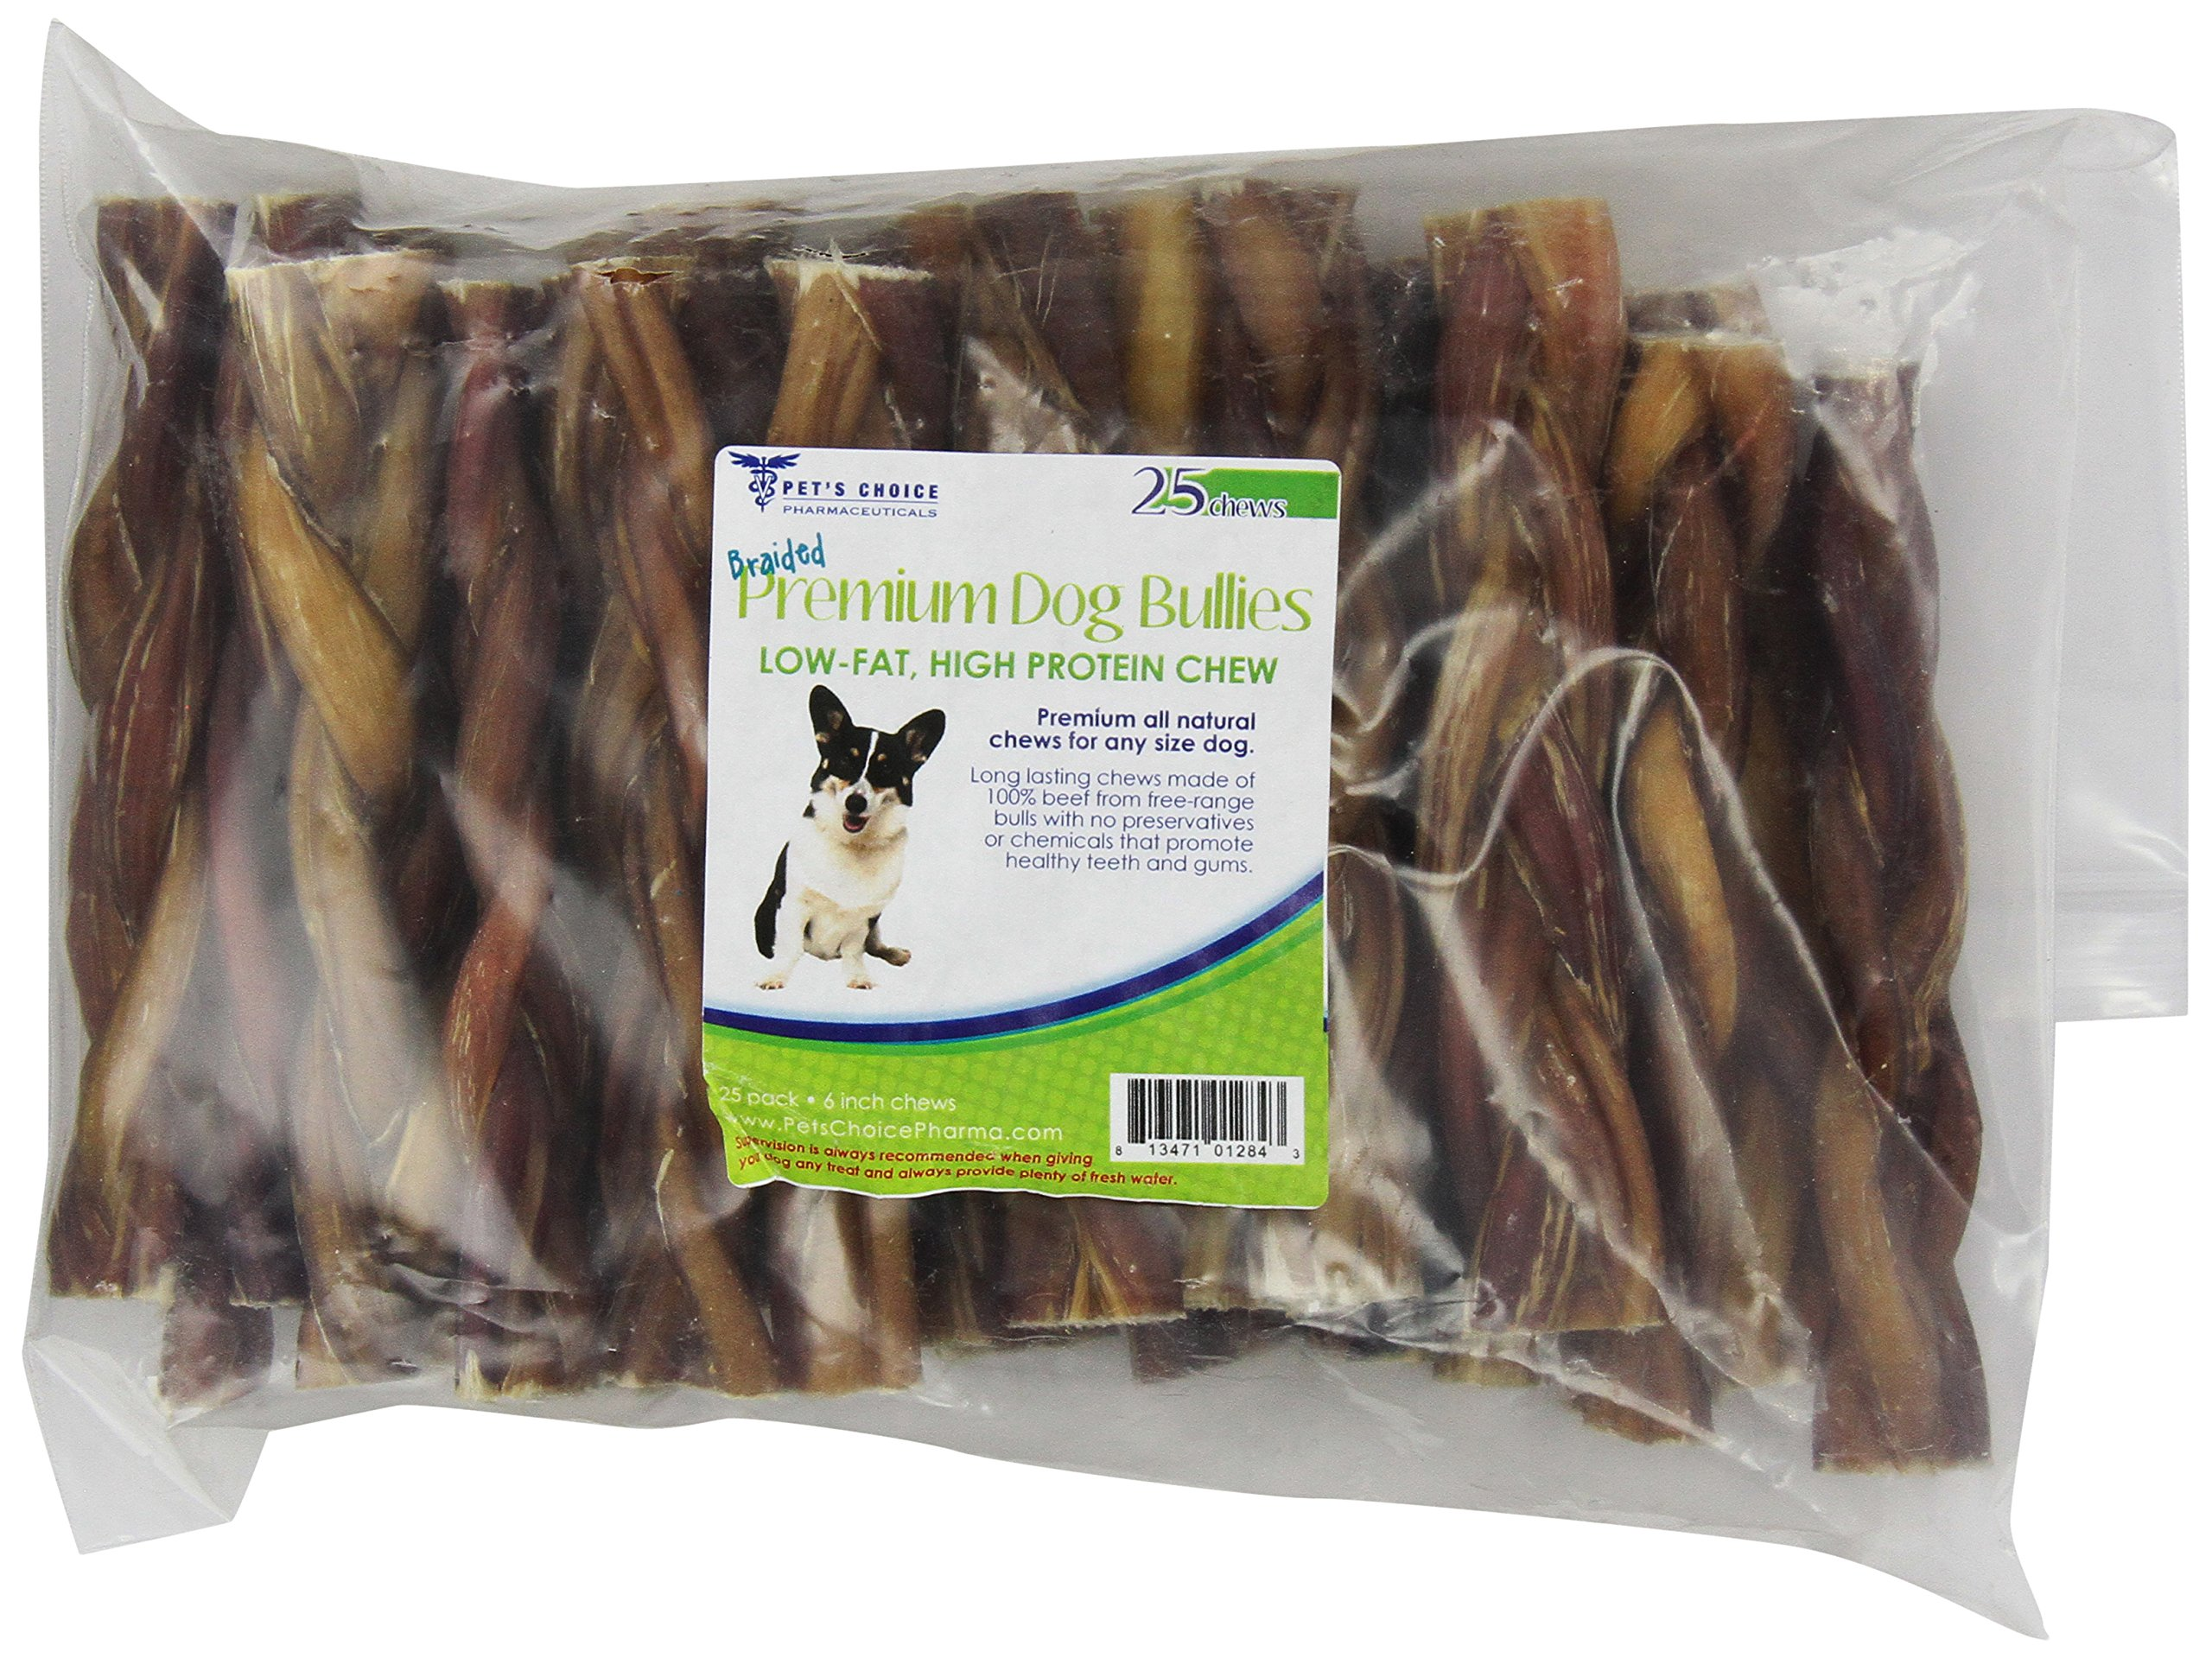 Pet'S Choice 25-Pack Braided Bully Stick, 6-Inch